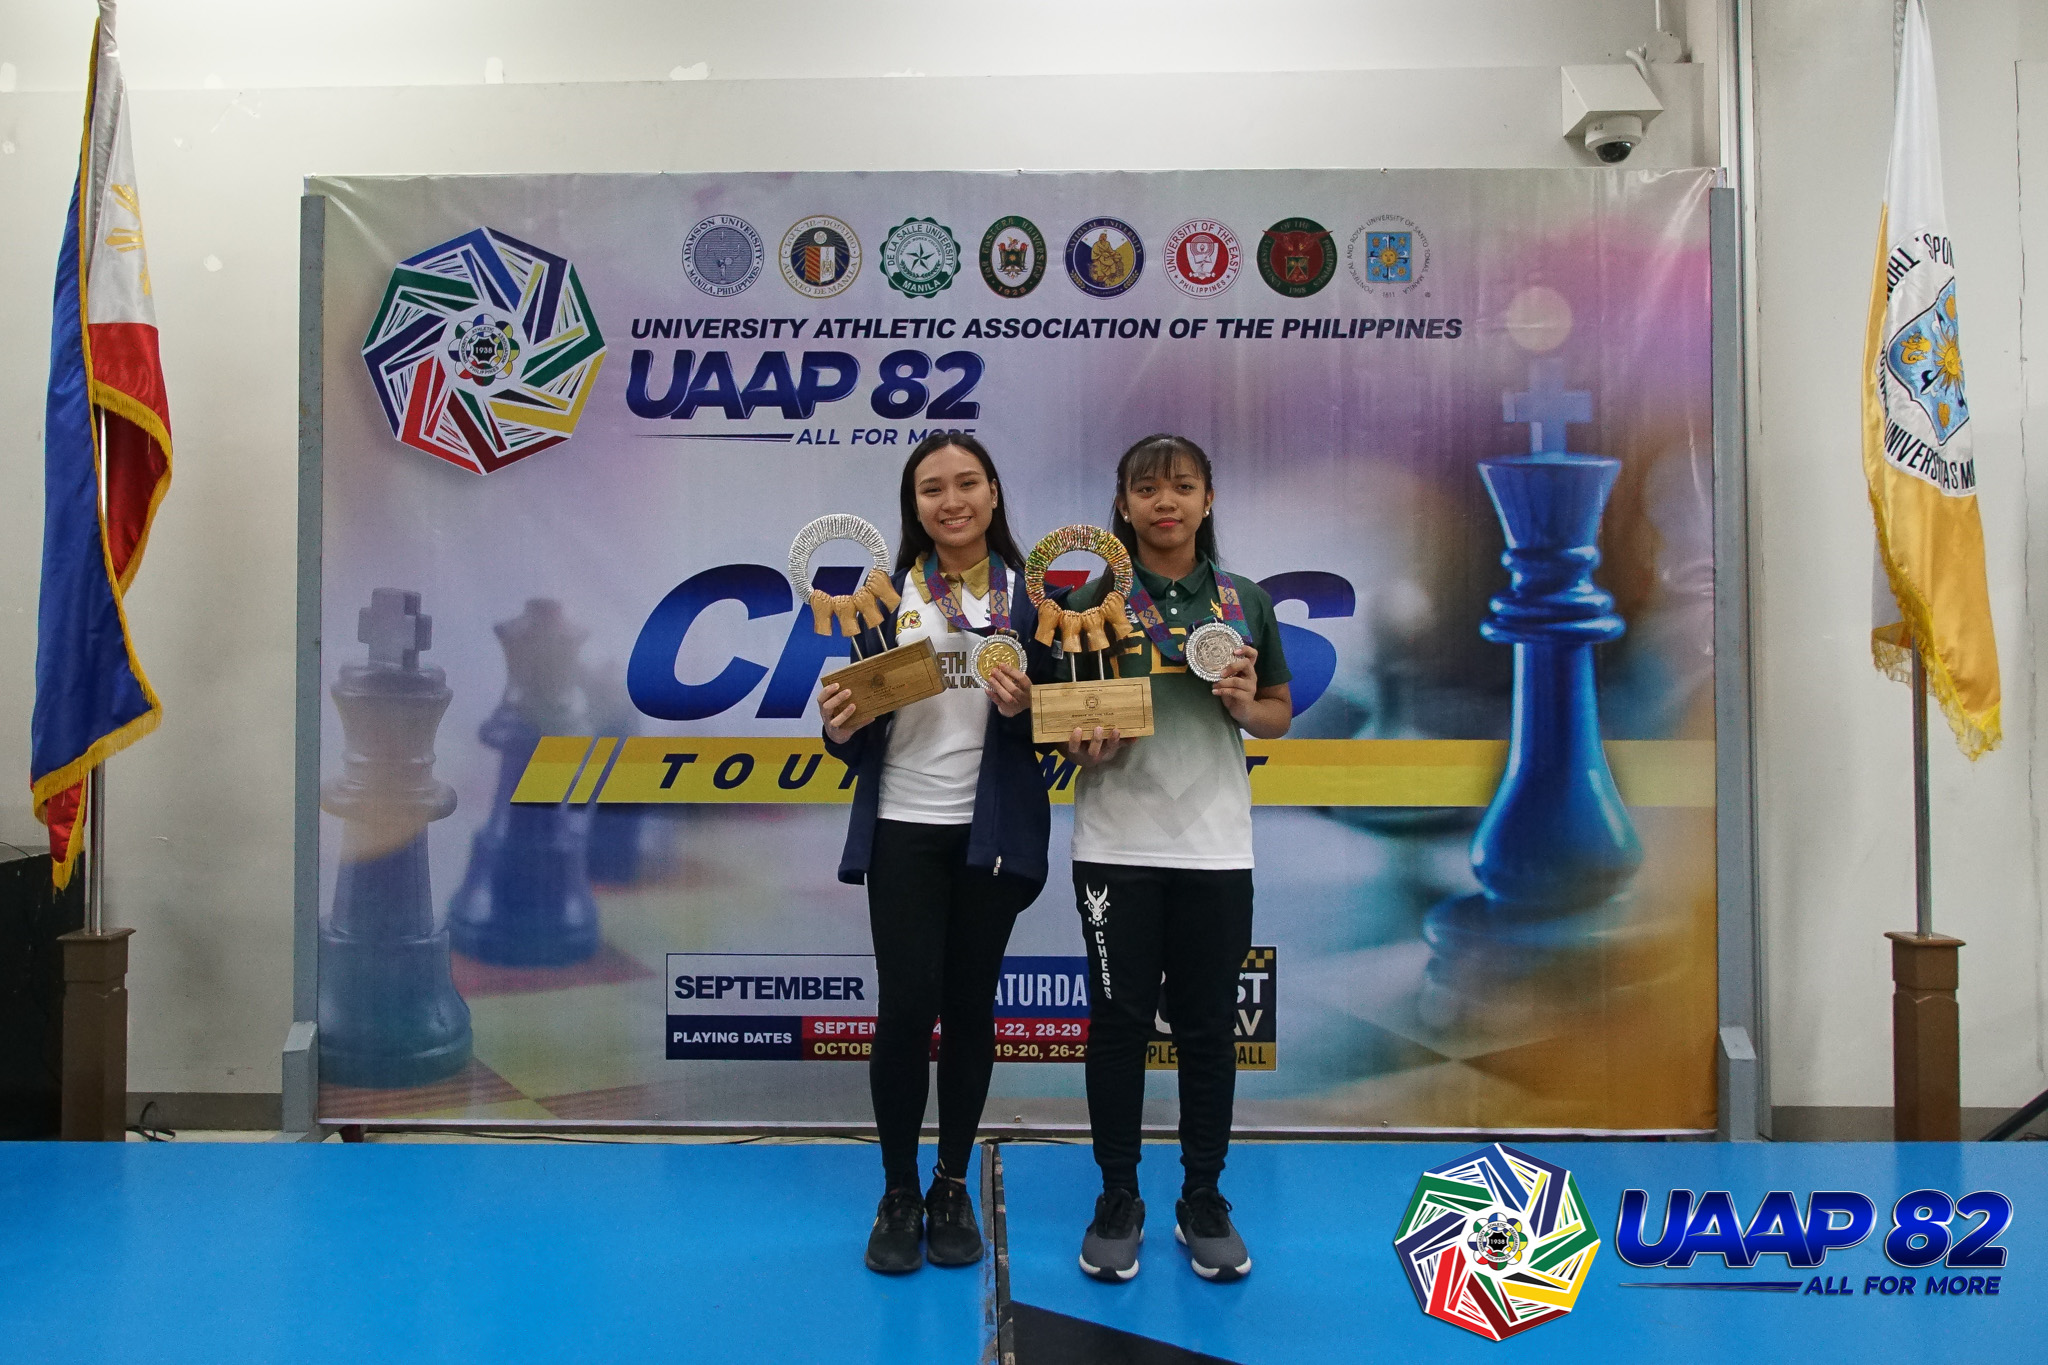 UAAP-82-Girls-Chess-Awarding-1-MVP-Allaney-Doroy-and-ROY-Mhage-Sebastian NU overtakes FEU to take UAAP Girls' Chess crown, UE Boys' ends 13-year drought ADMU AdU Chess DLSU FEU News NU UAAP UE UST  - philippine sports news